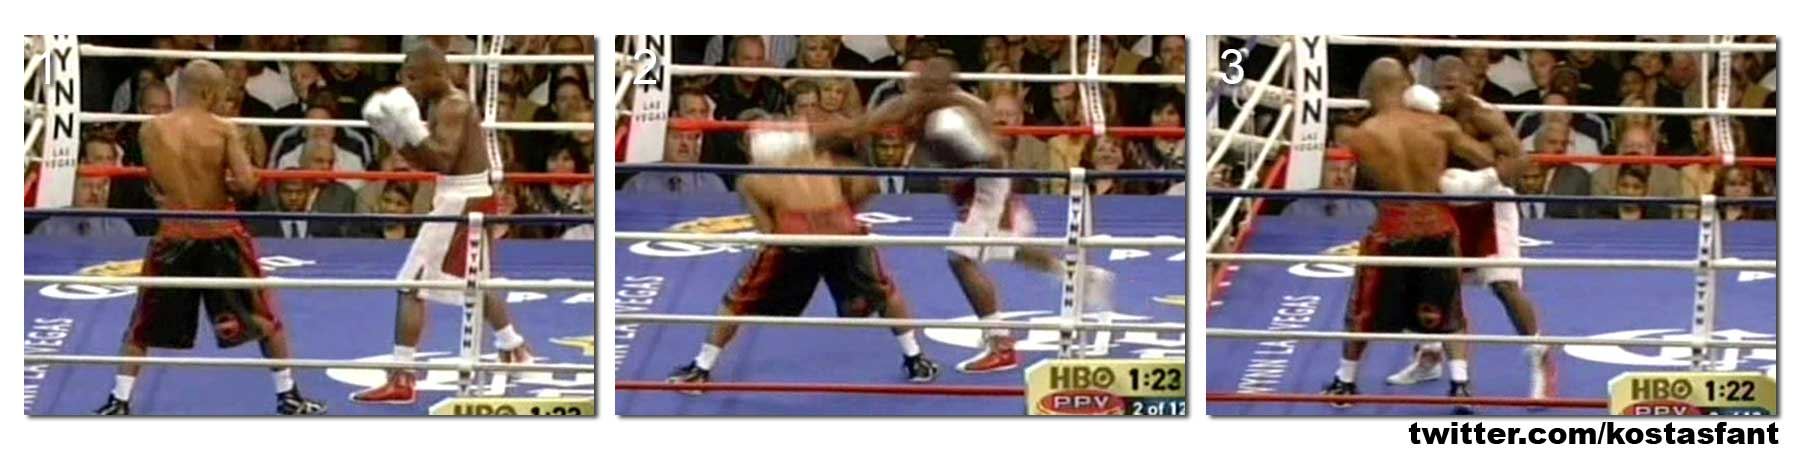 Floyd Mayweather Jr. vs. Zab Judah